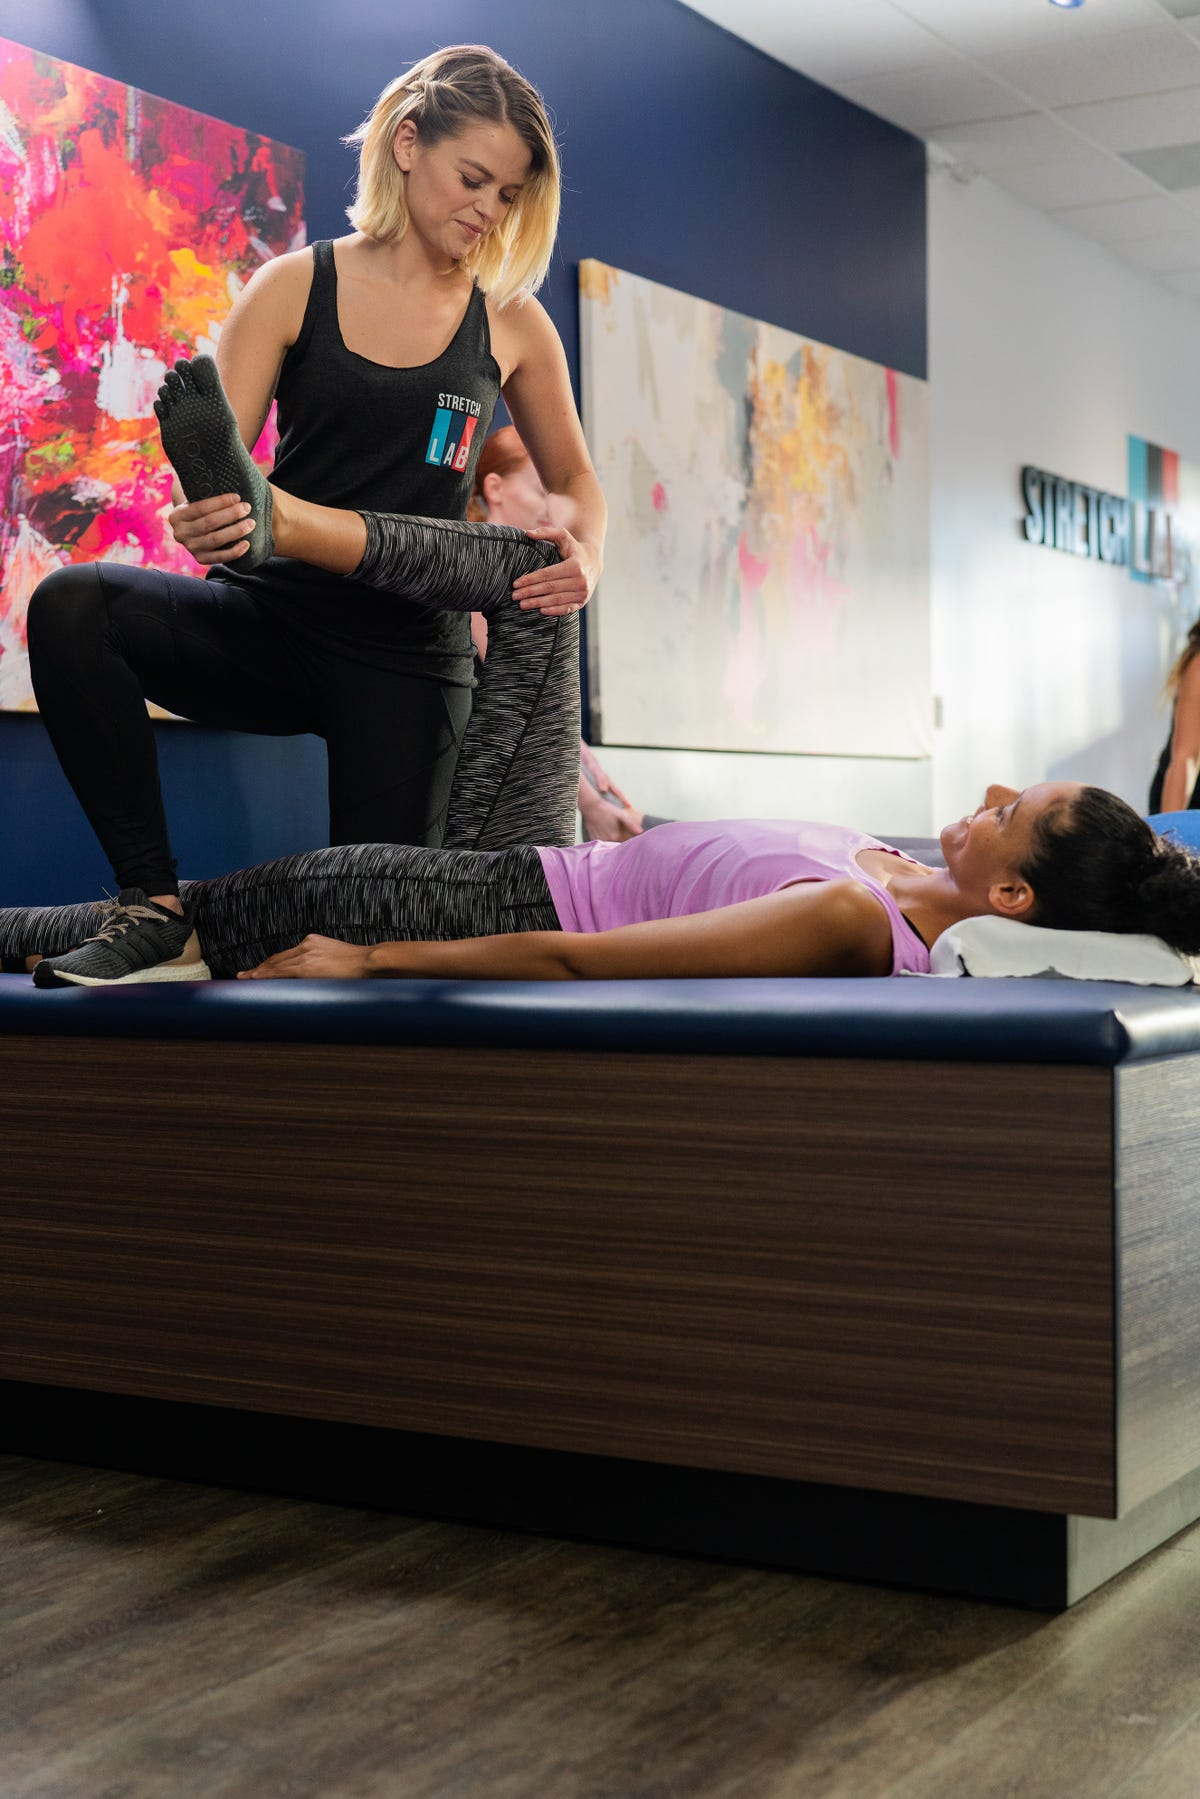 Once an ignored end of a workout session, stretching is now